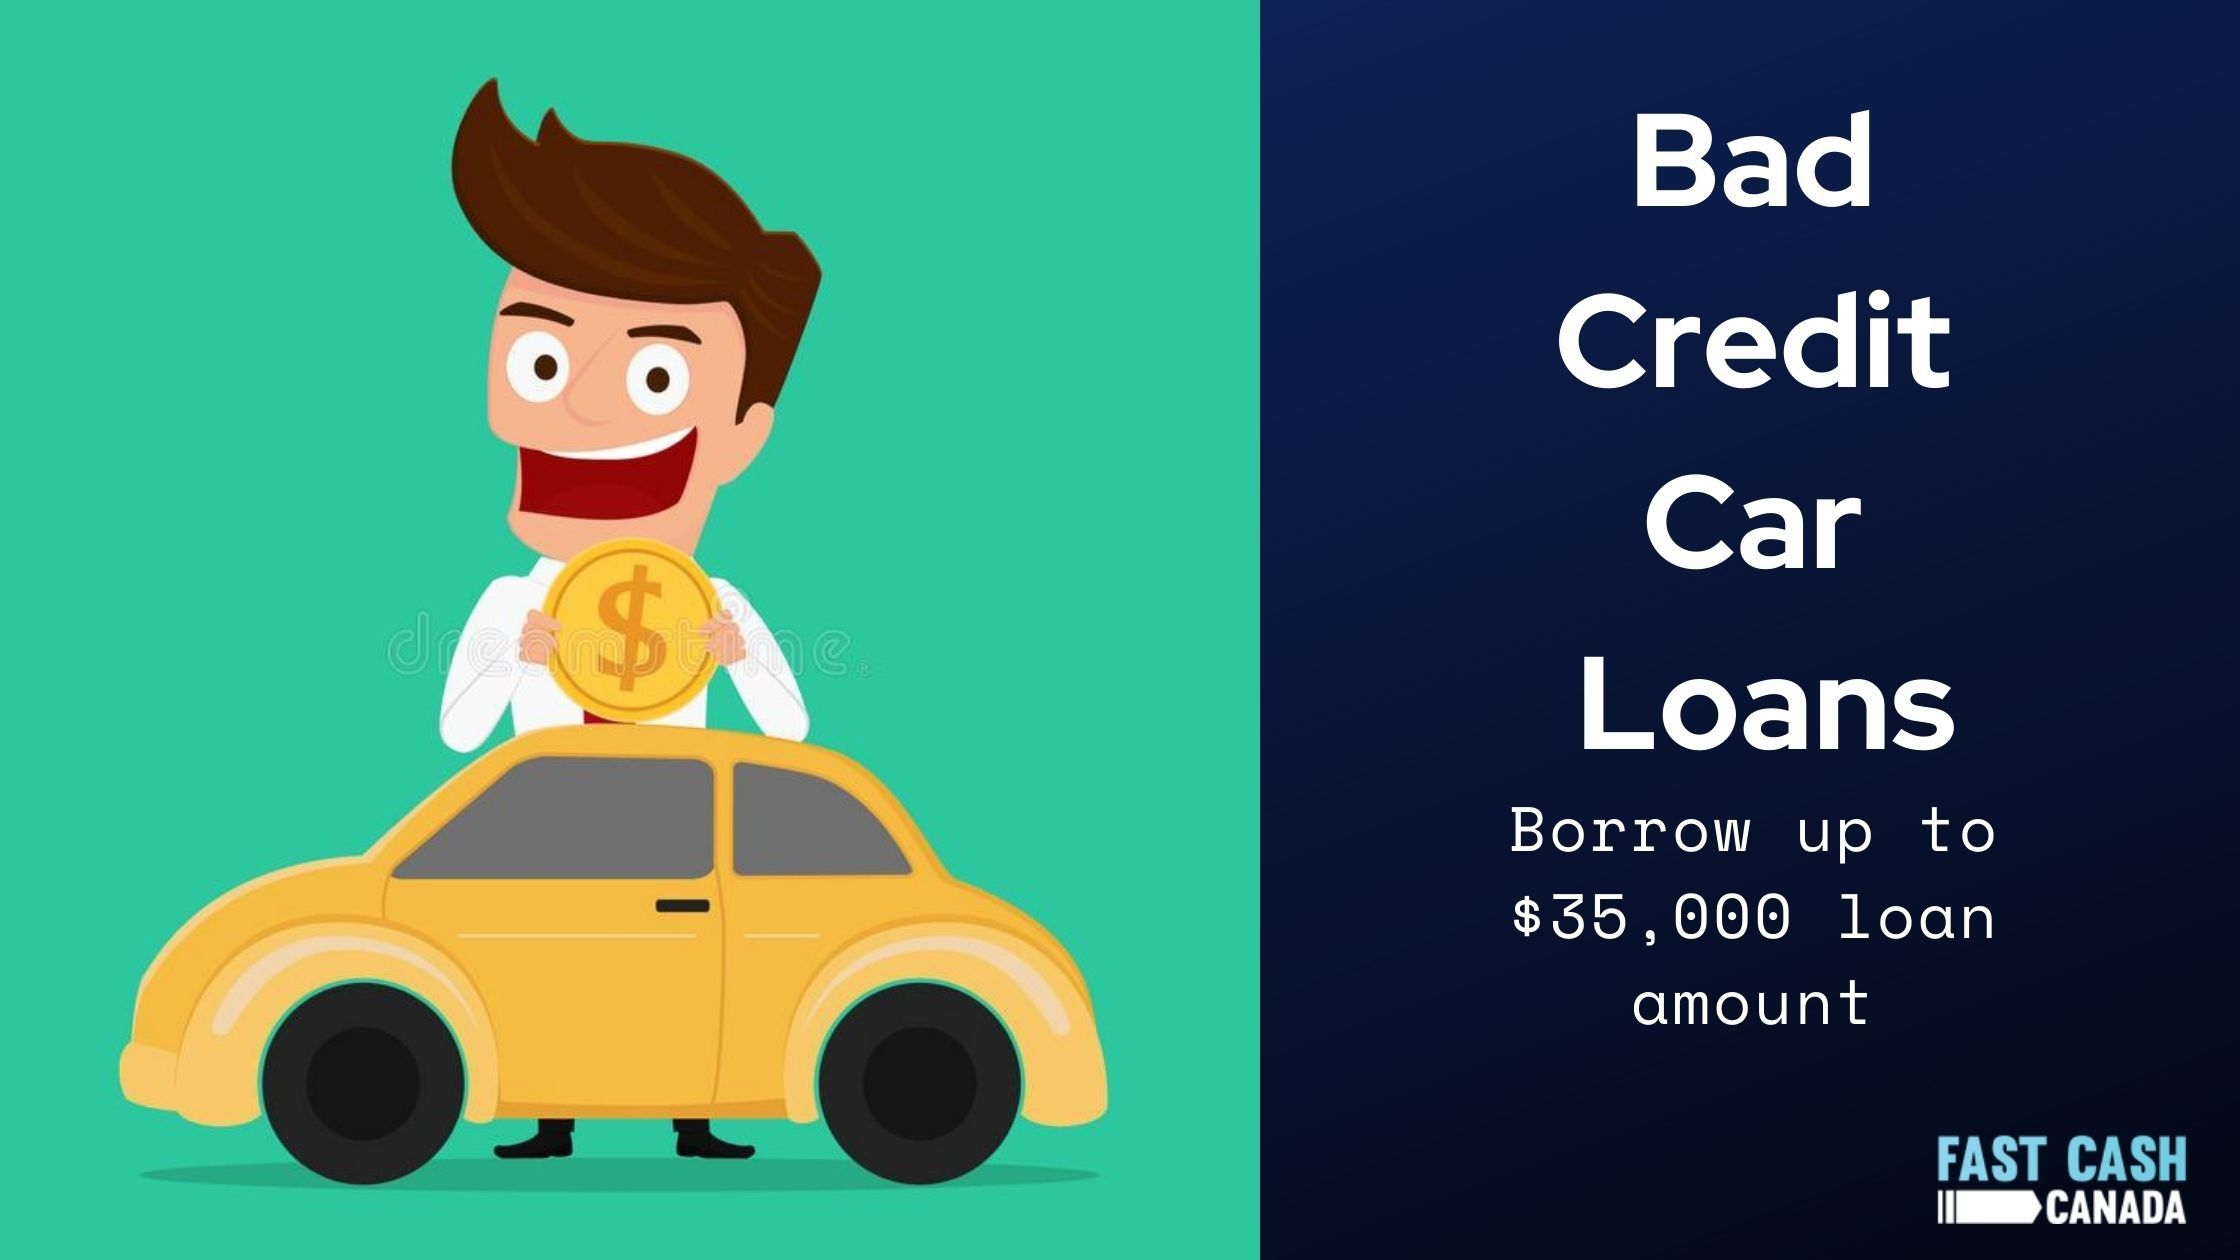 Get The Better Loan Amount With Bad Credit Car Loan